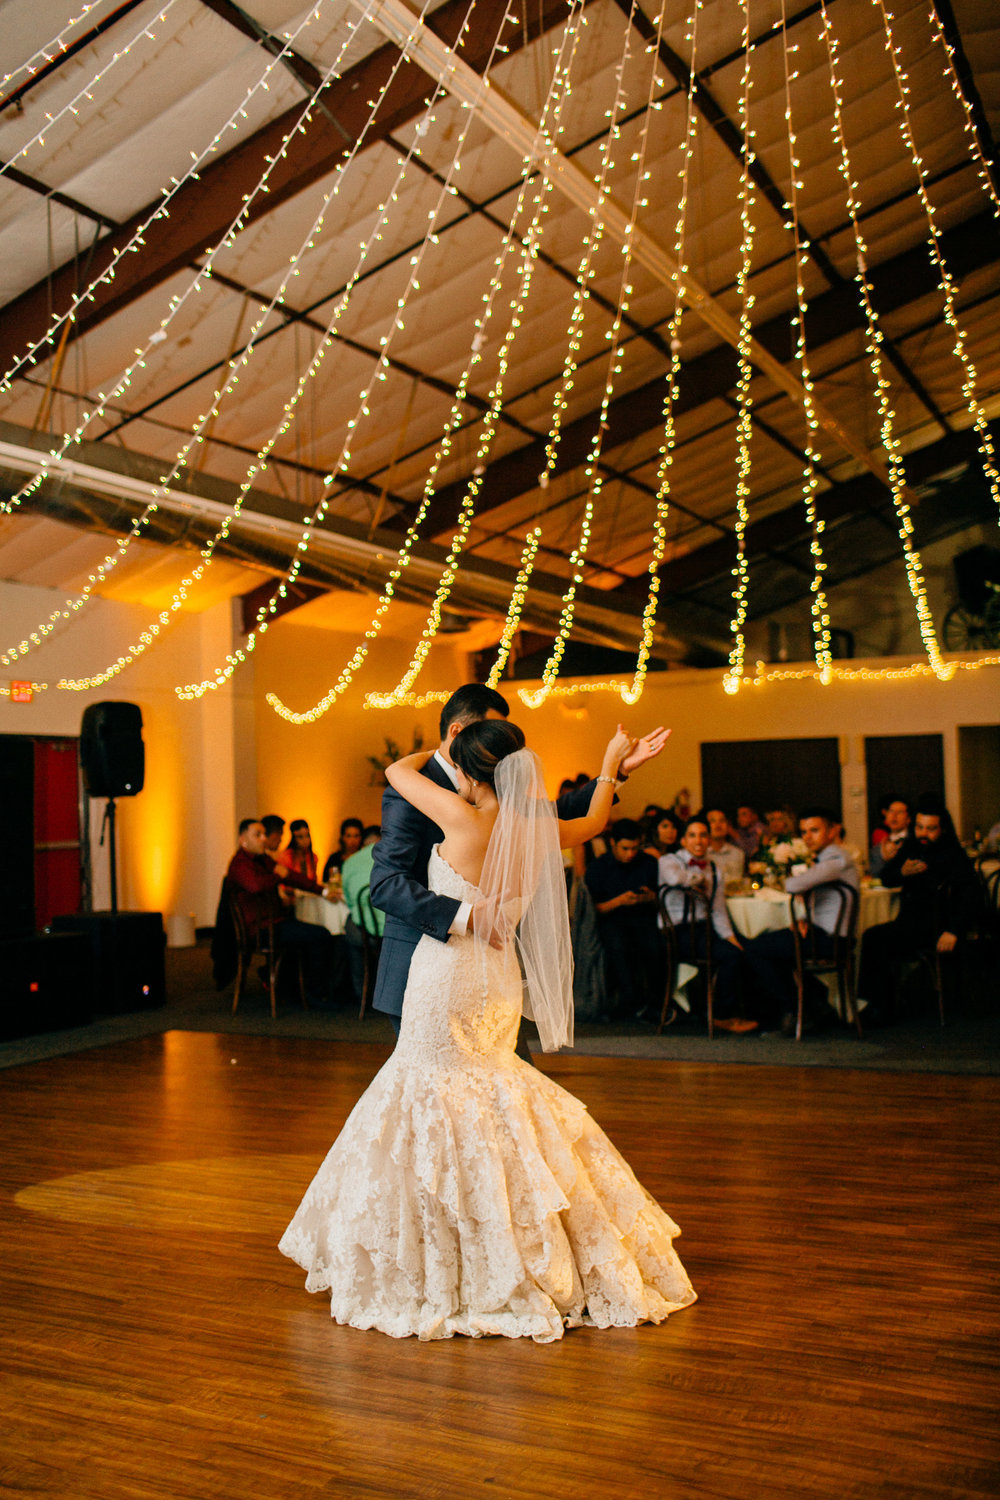 1fd19-elegant-country-charm-ranch-wedding-first-dance.jpg